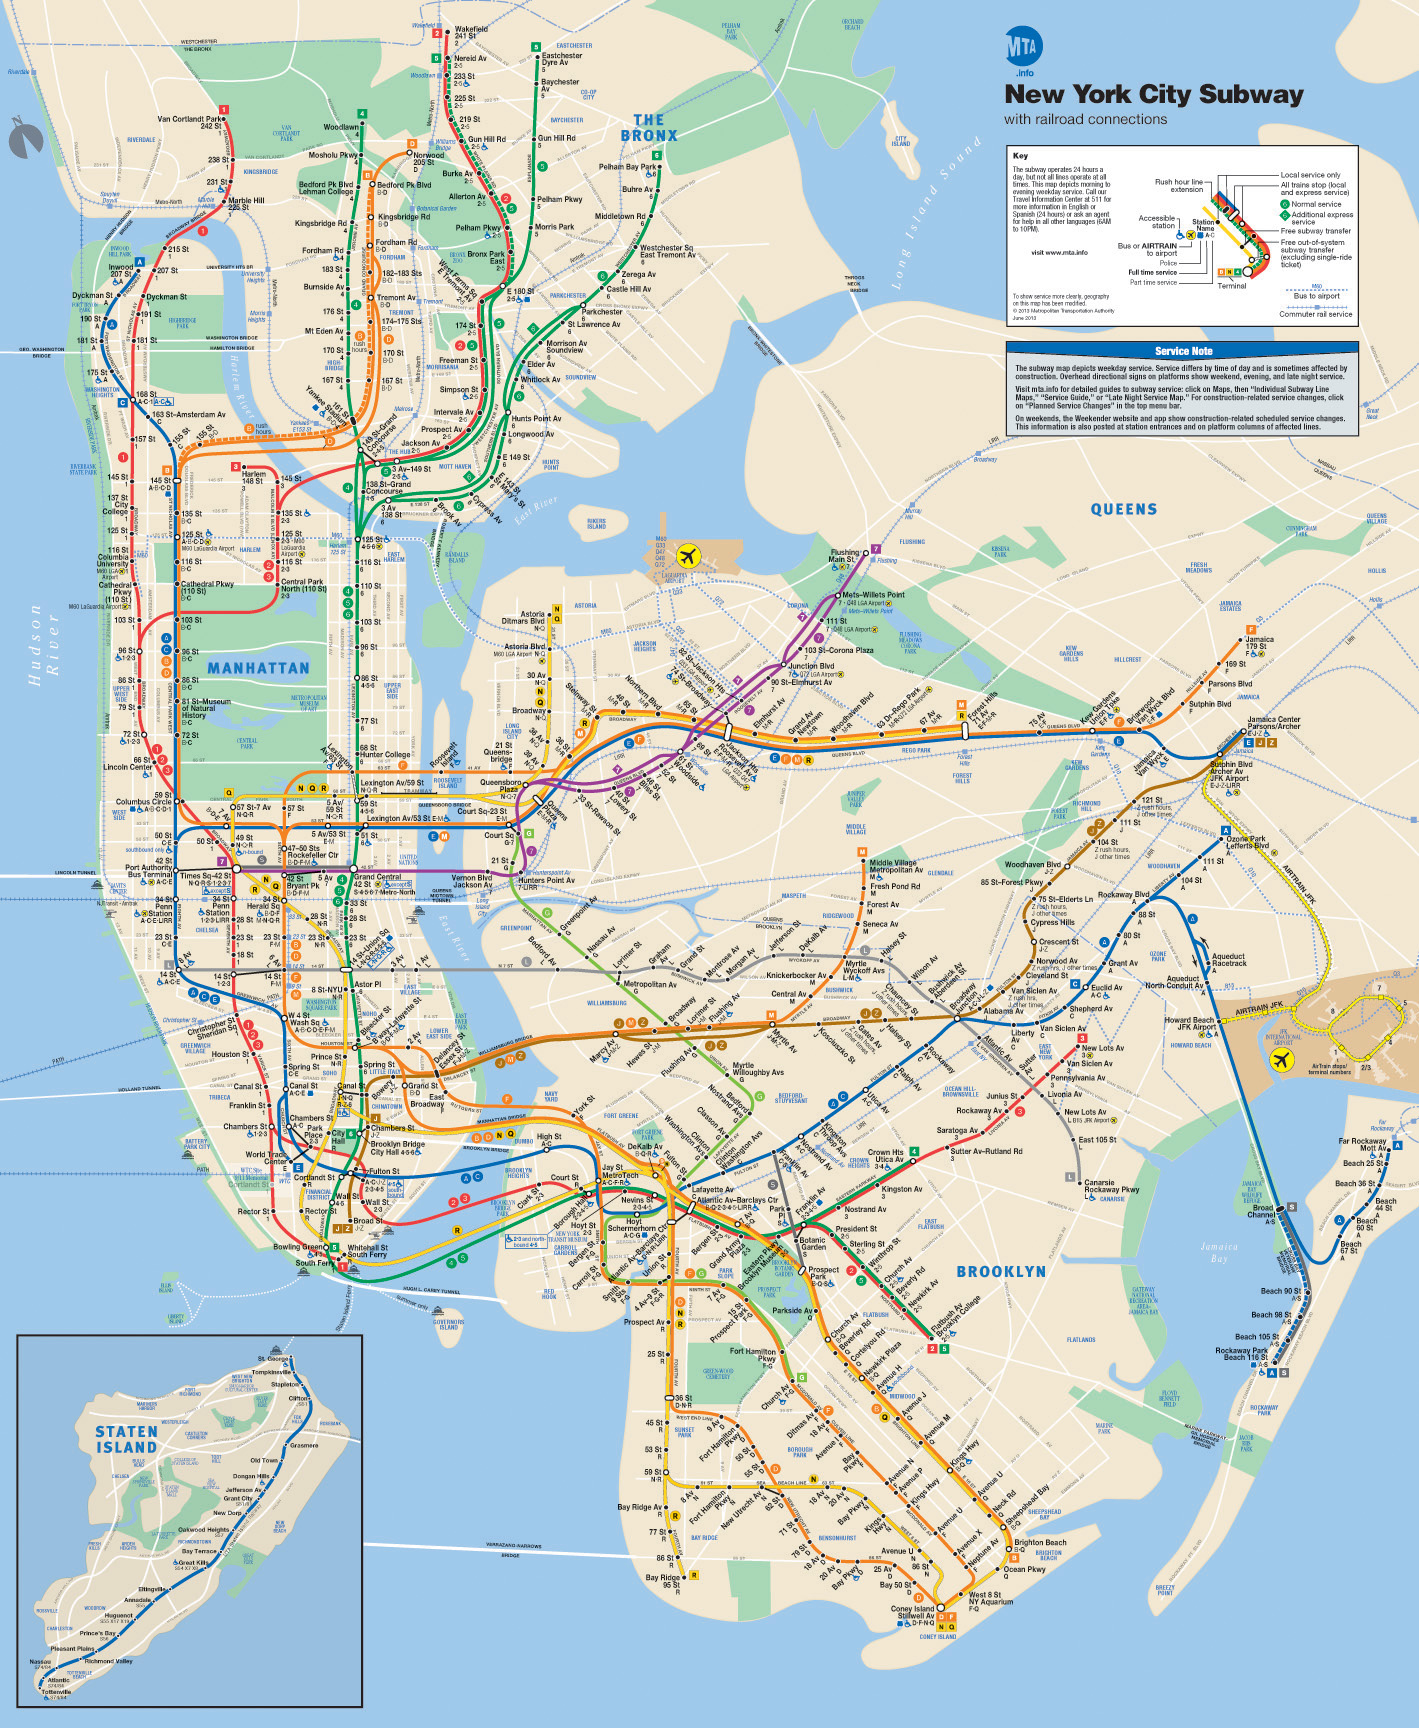 Is the subway in new york easy to use quizlet